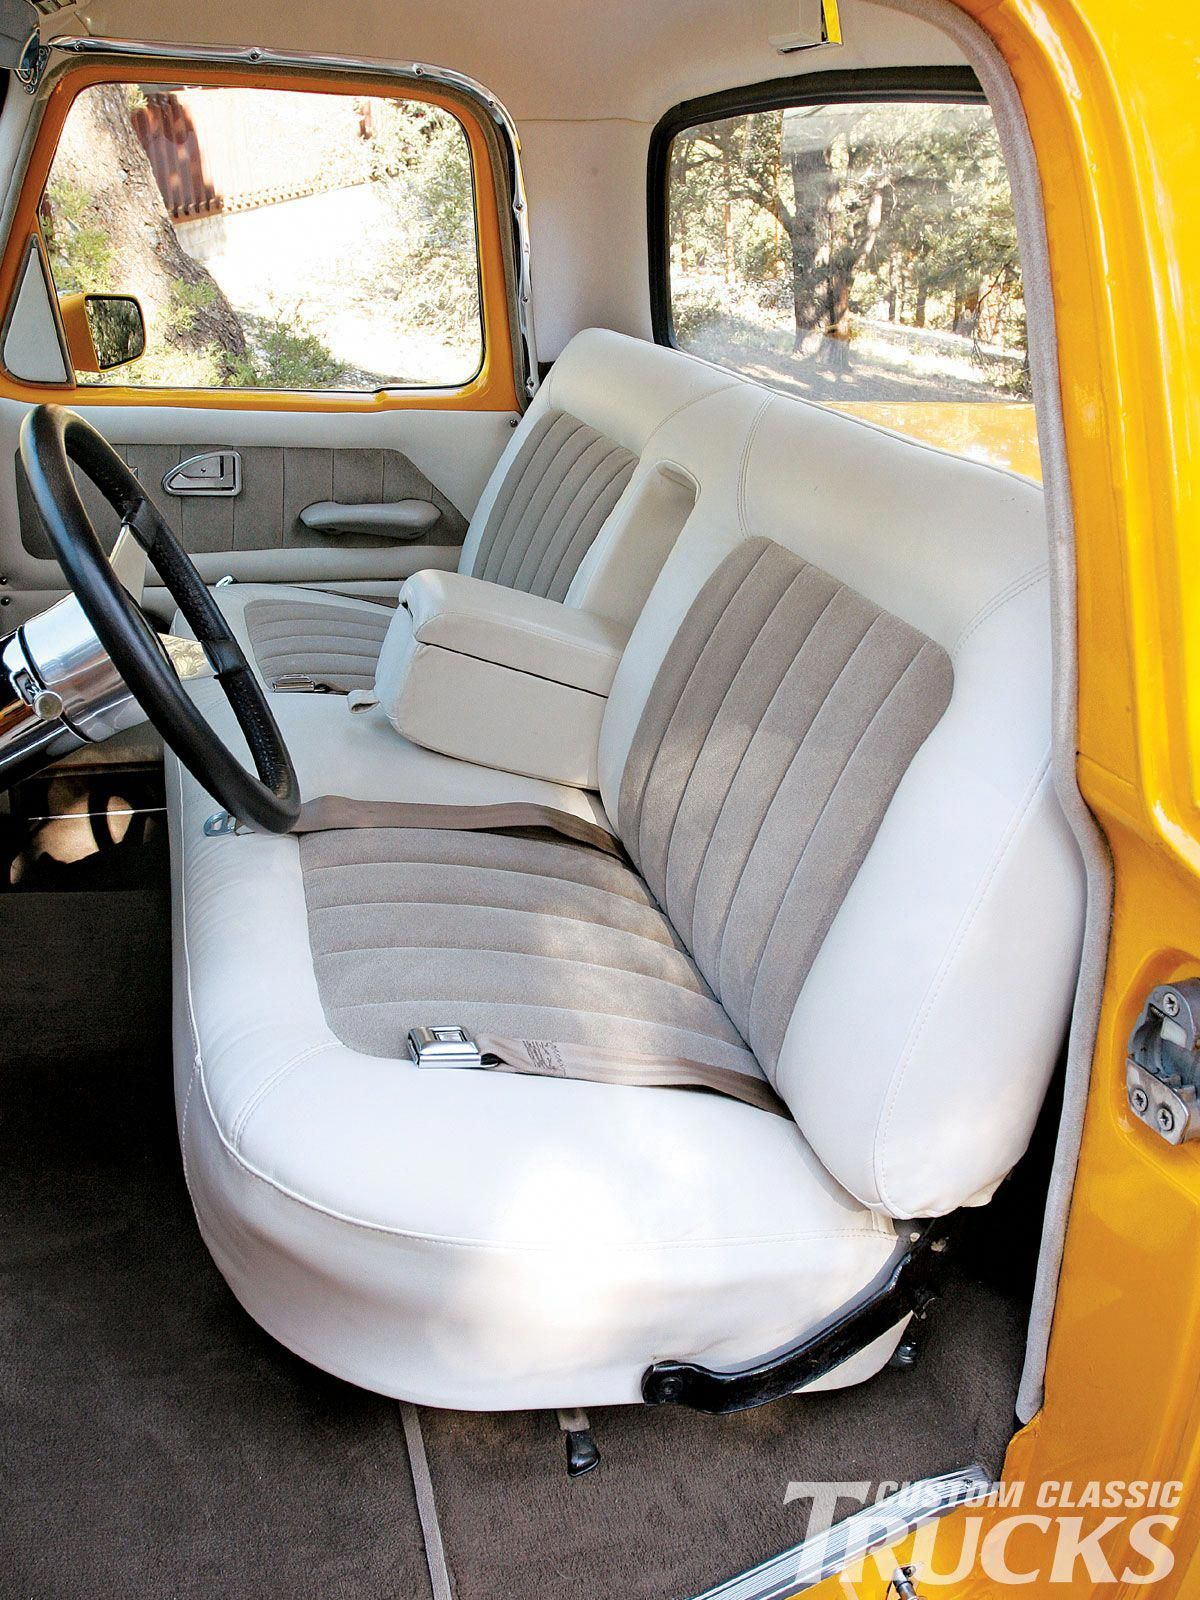 White Leather Dining Chairs Outdoortablesandchairs Chevy Trucks Custom Car Interior 1966 Chevy Truck